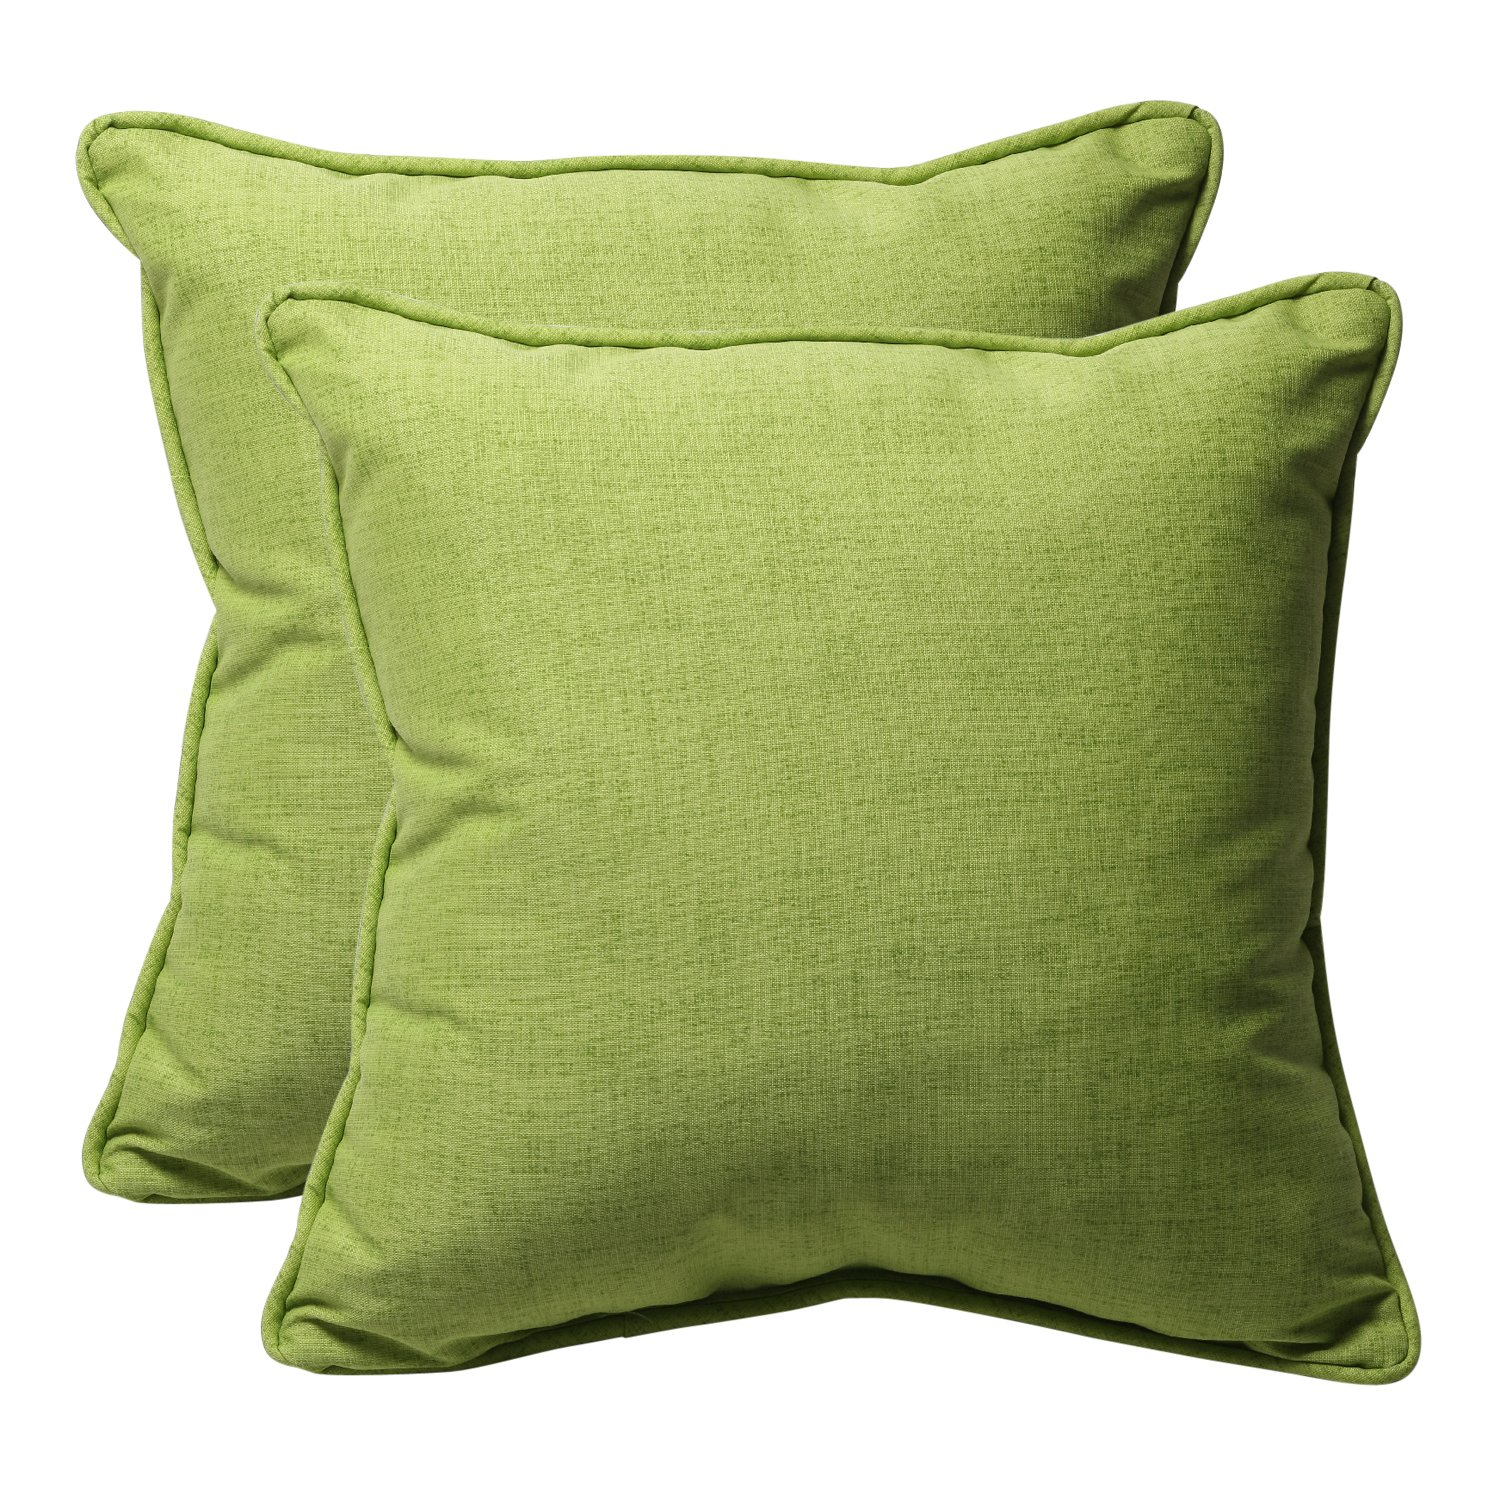 Pillow Perfect Decorative Textured Solid Square Toss Pillows, 18-1/2''L x 18-1/2''W x 5'' D, Green